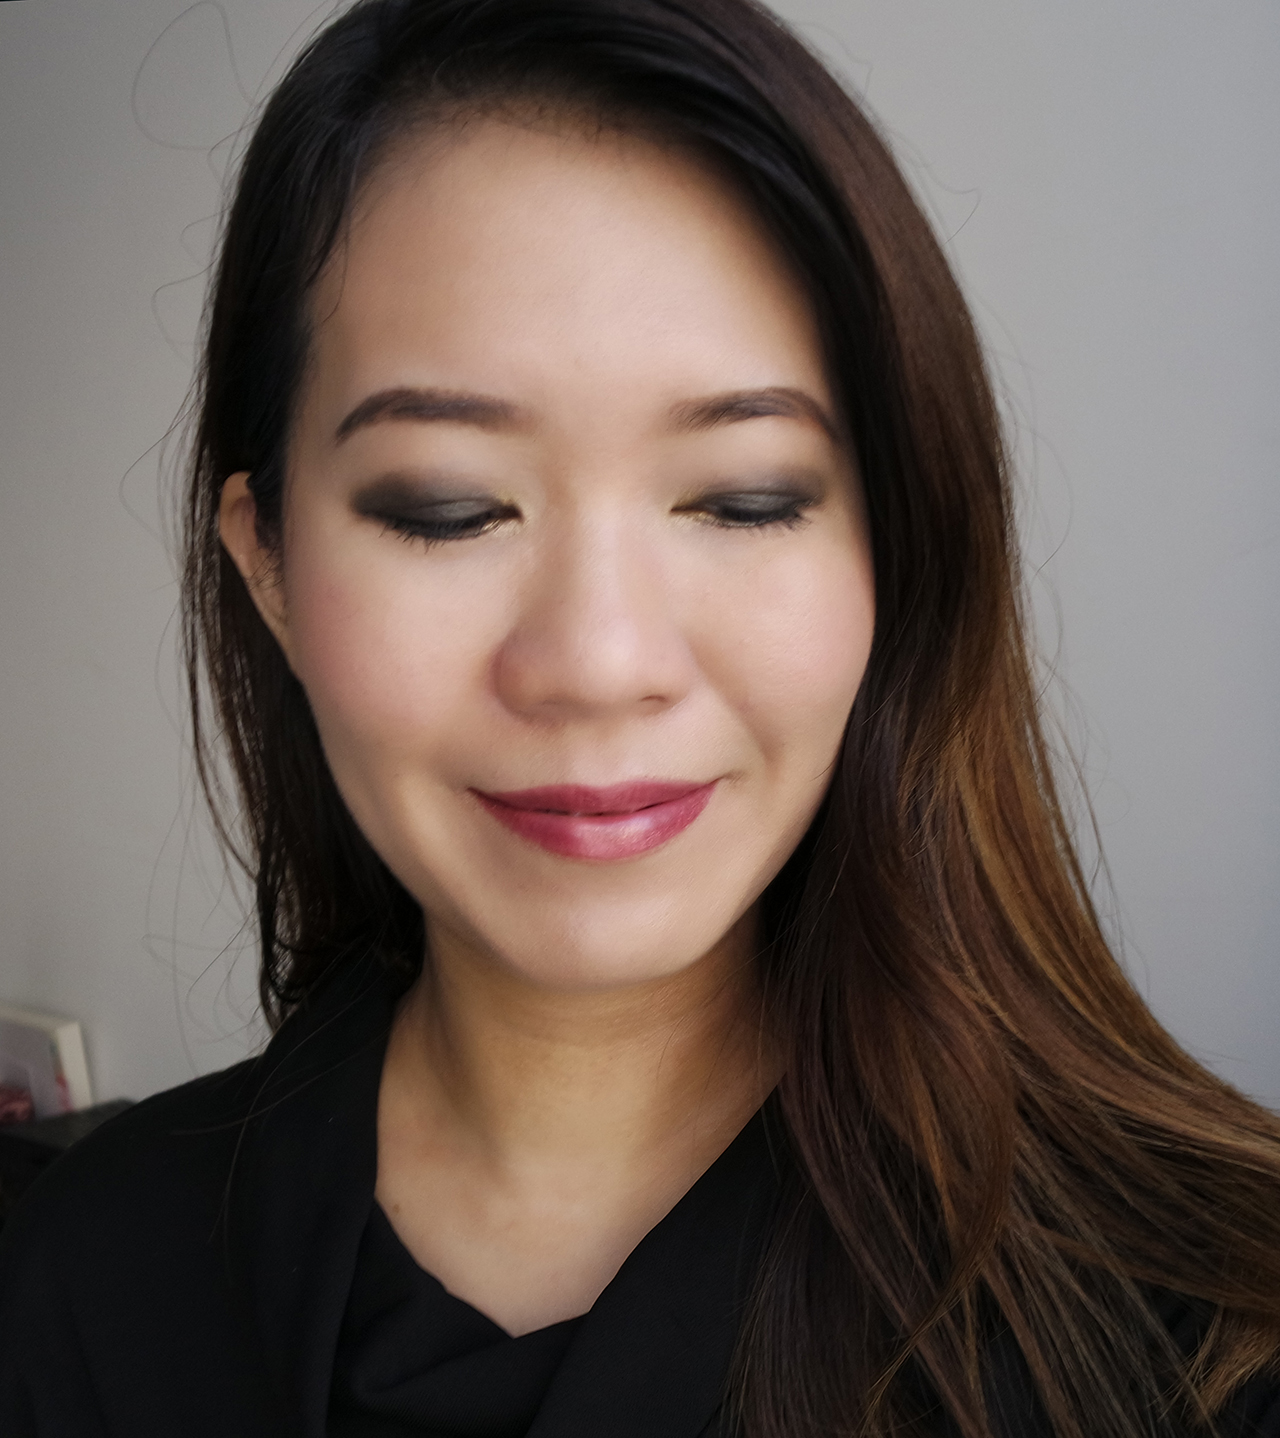 Chanel Ombre Premiere makeup look